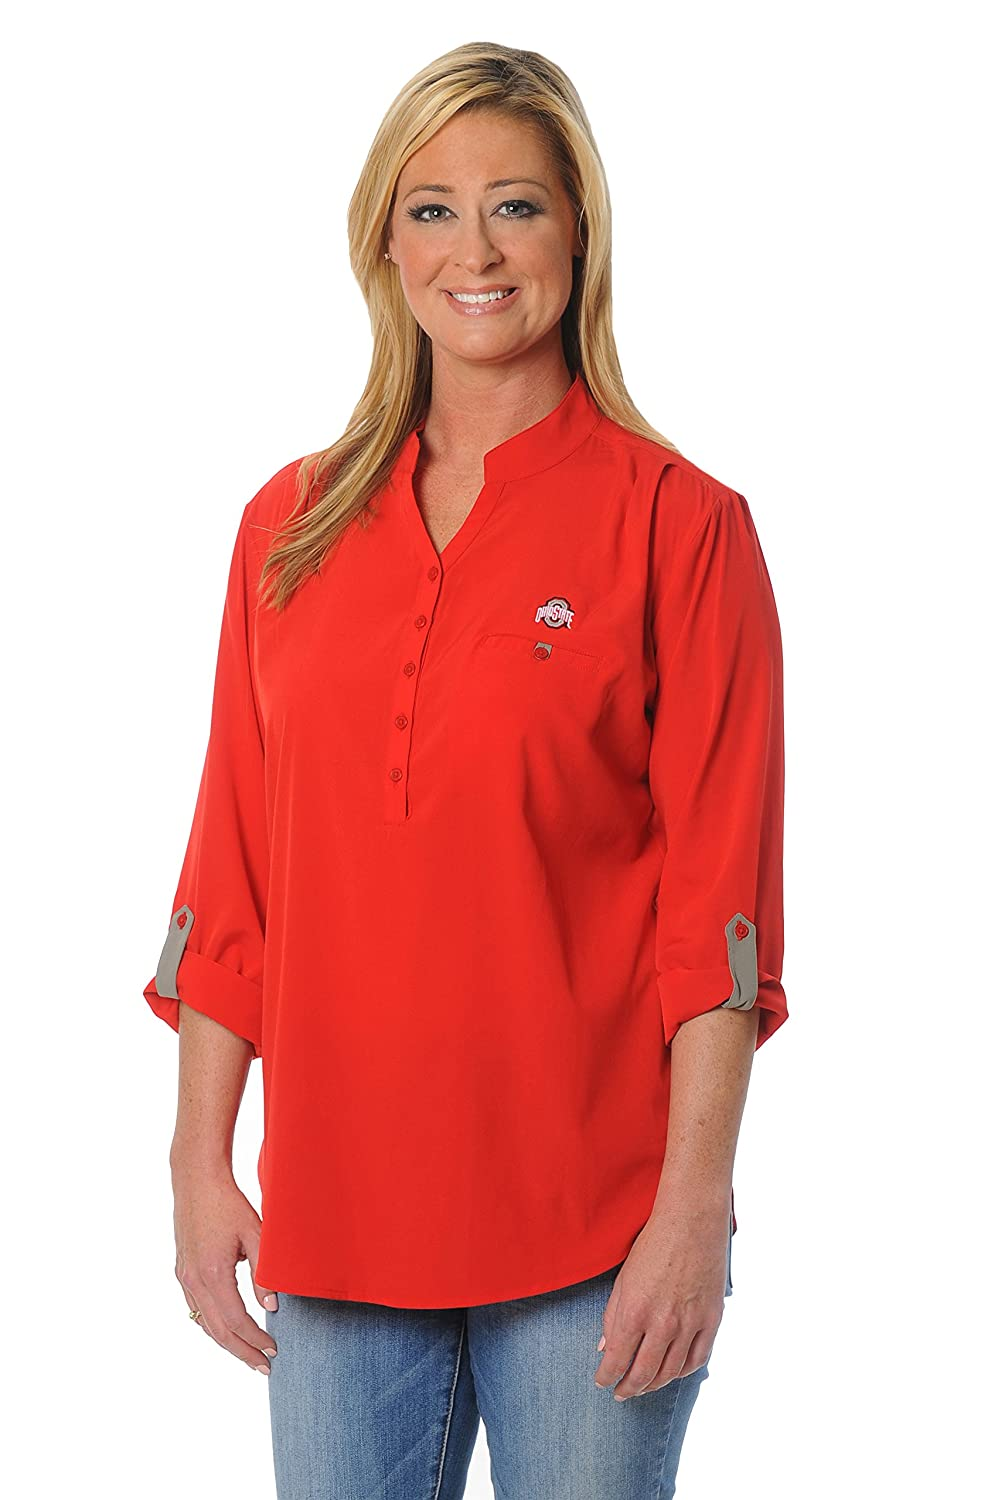 NCAA Ohio State Buckeyes Women's Button Down Tunic Top Large Red Grey